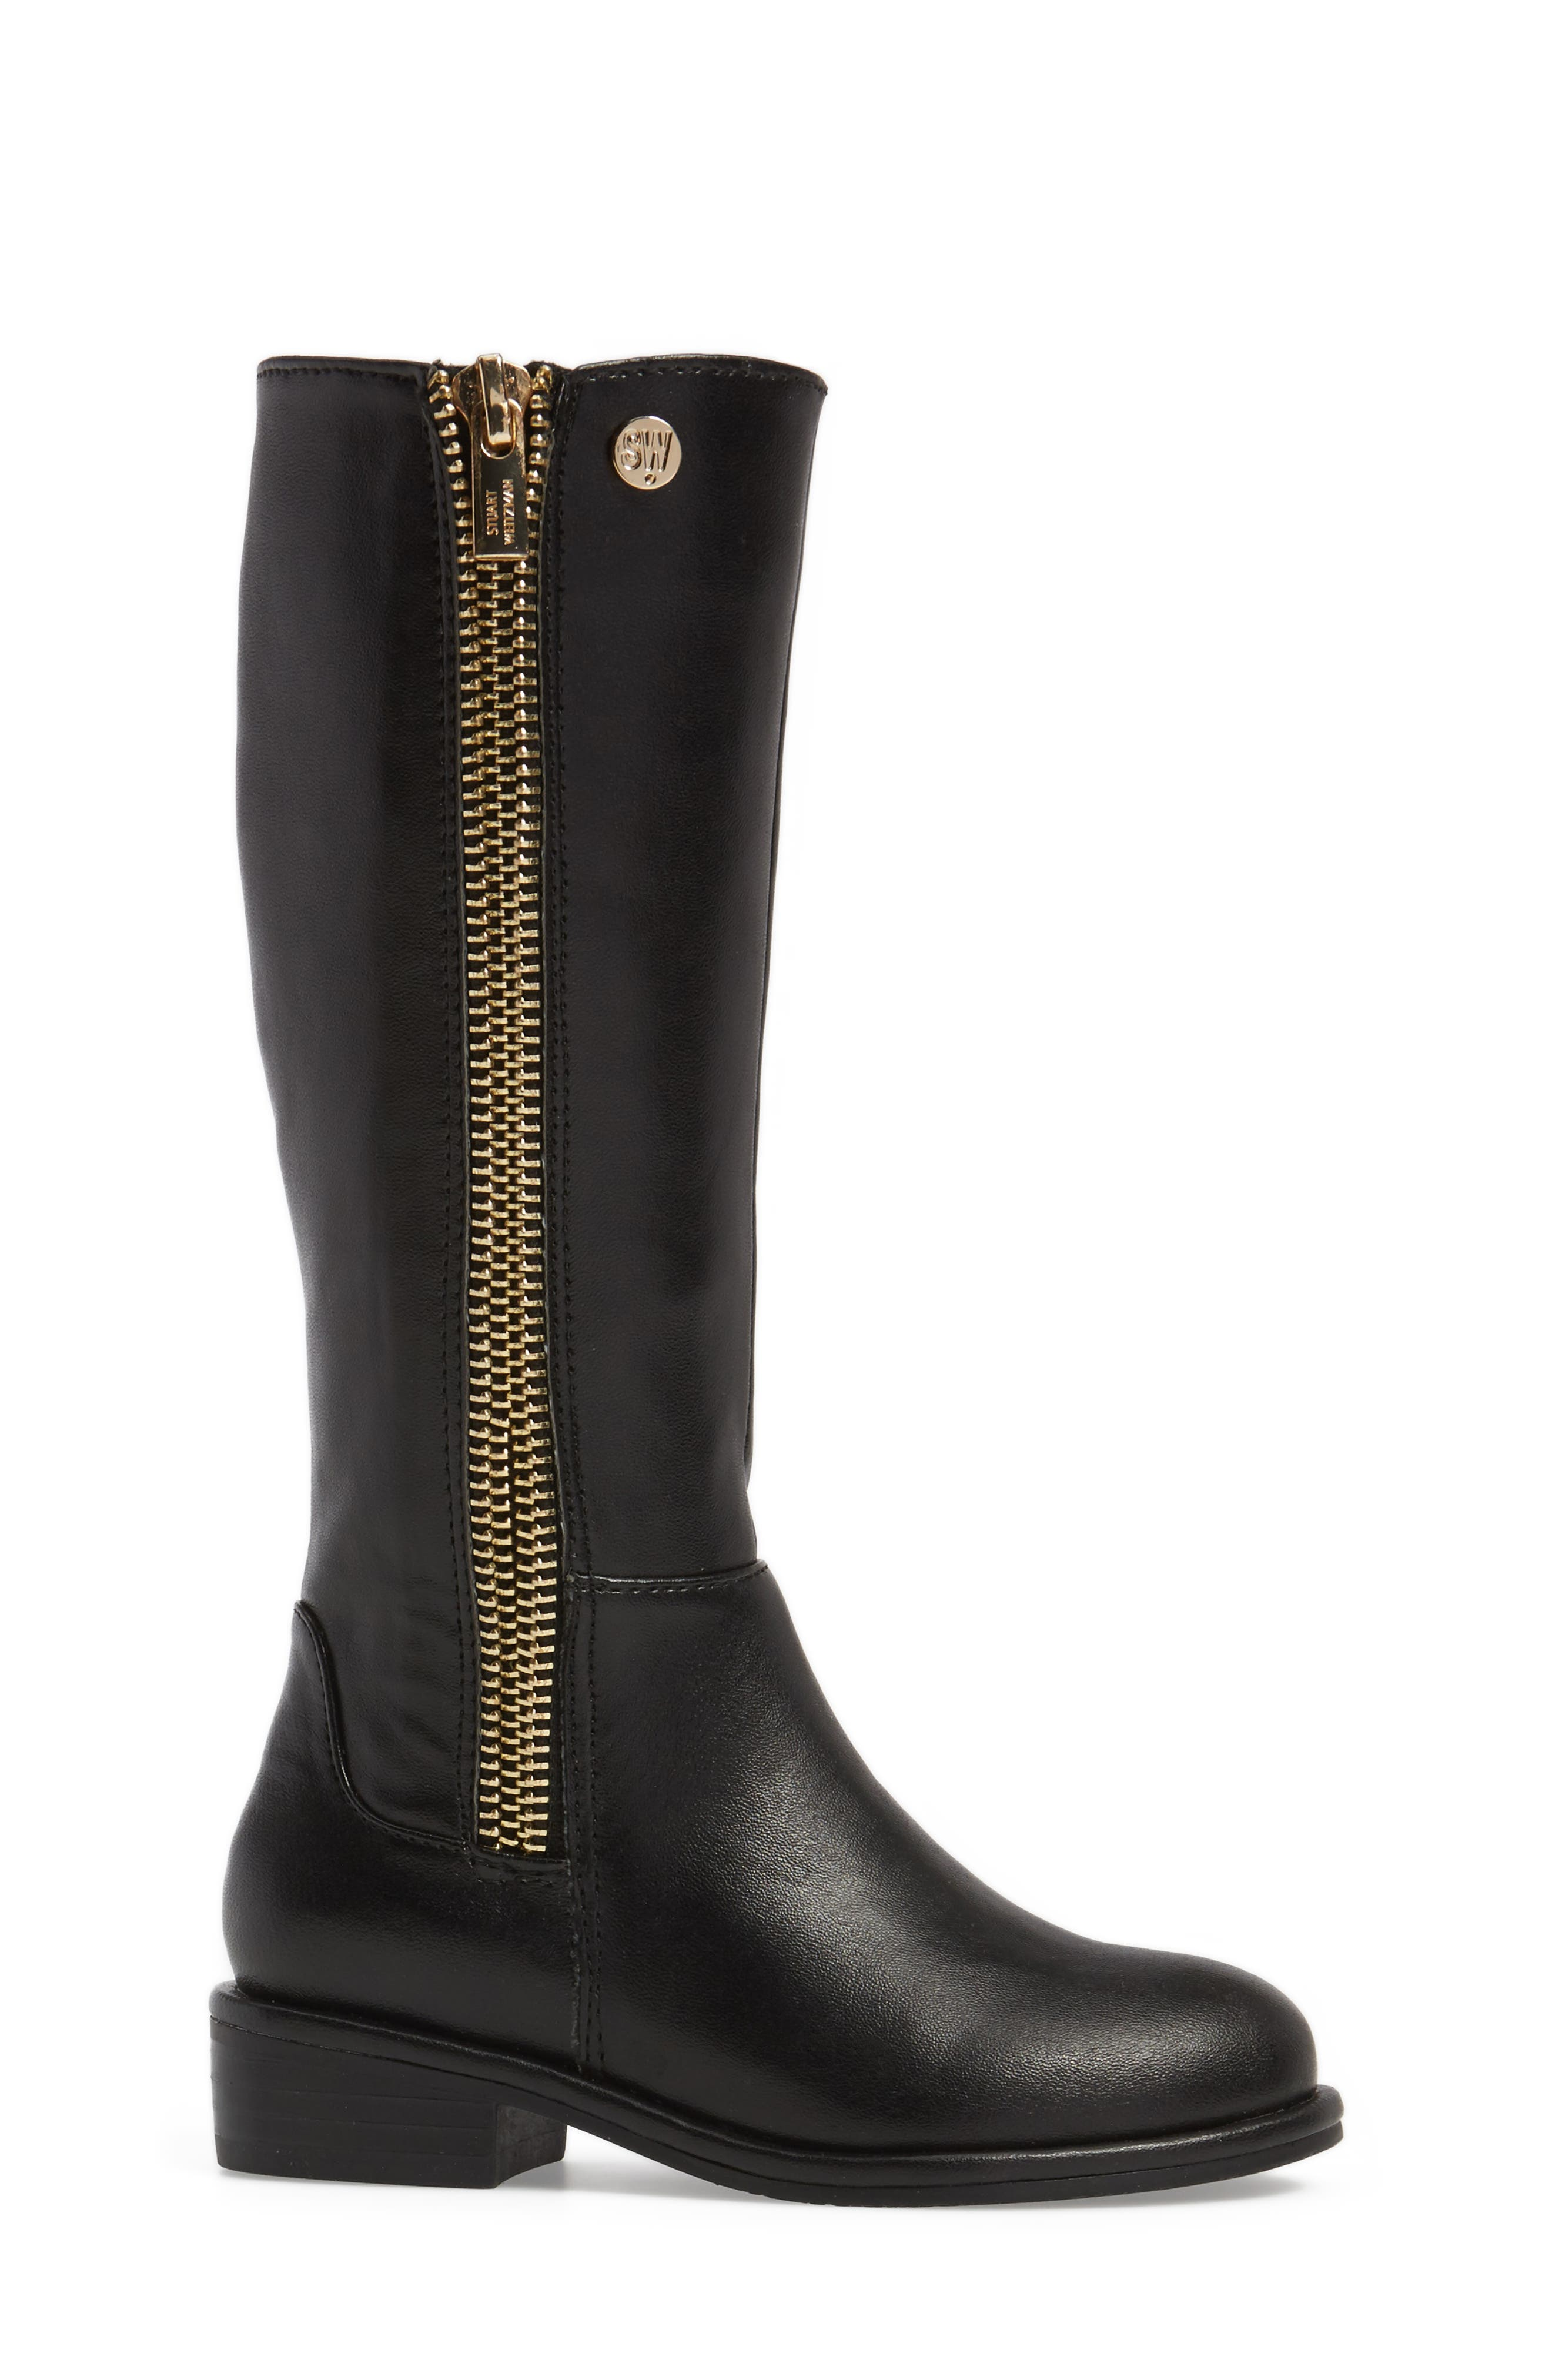 Lowland Riding Boot,                             Alternate thumbnail 3, color,                             001